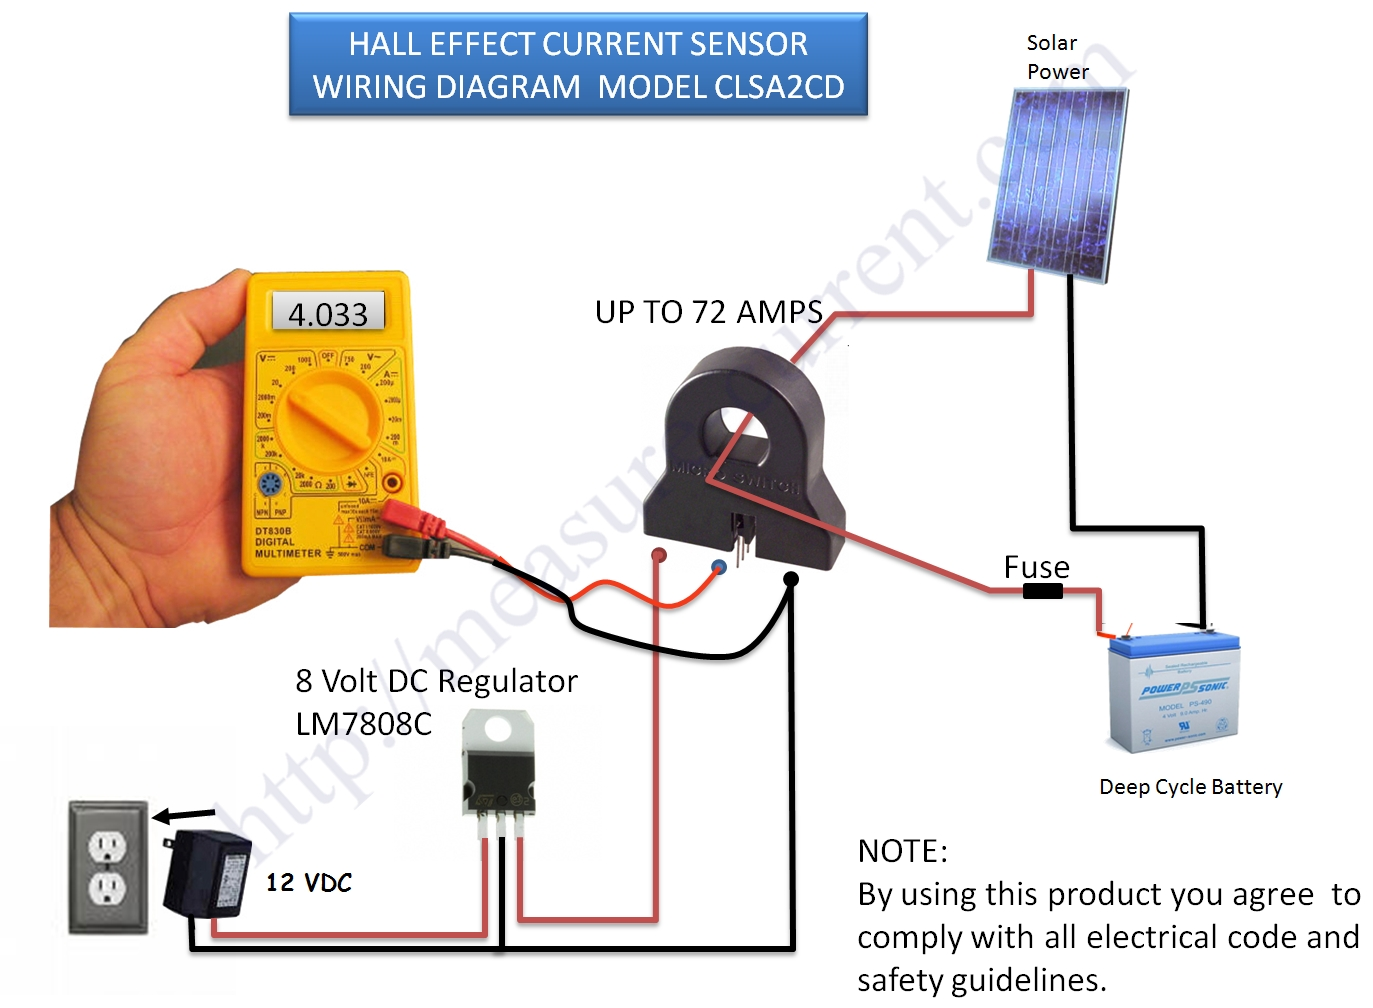 how to measure current and power using a hall effect transducer clsa2cd honeywell current sensor hall effect transducer